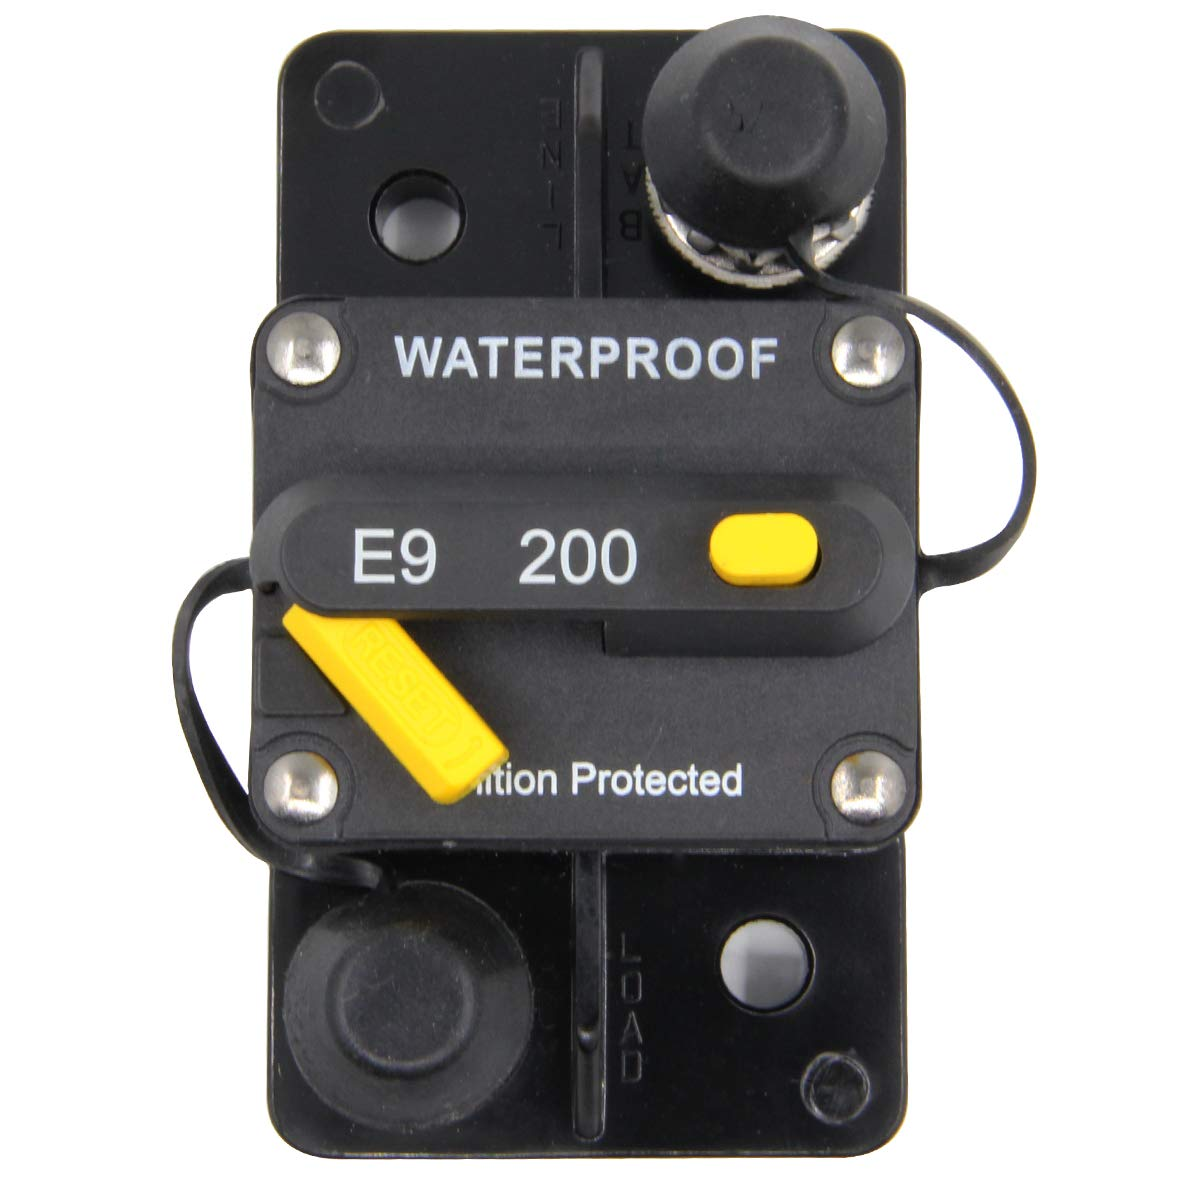 RKURCK 12V-32V DC 10A Circuit Breaker Fuse Inverter Fuse holder with Manual Reset Button for Auto Truck RV Marine Trailer Waterproof